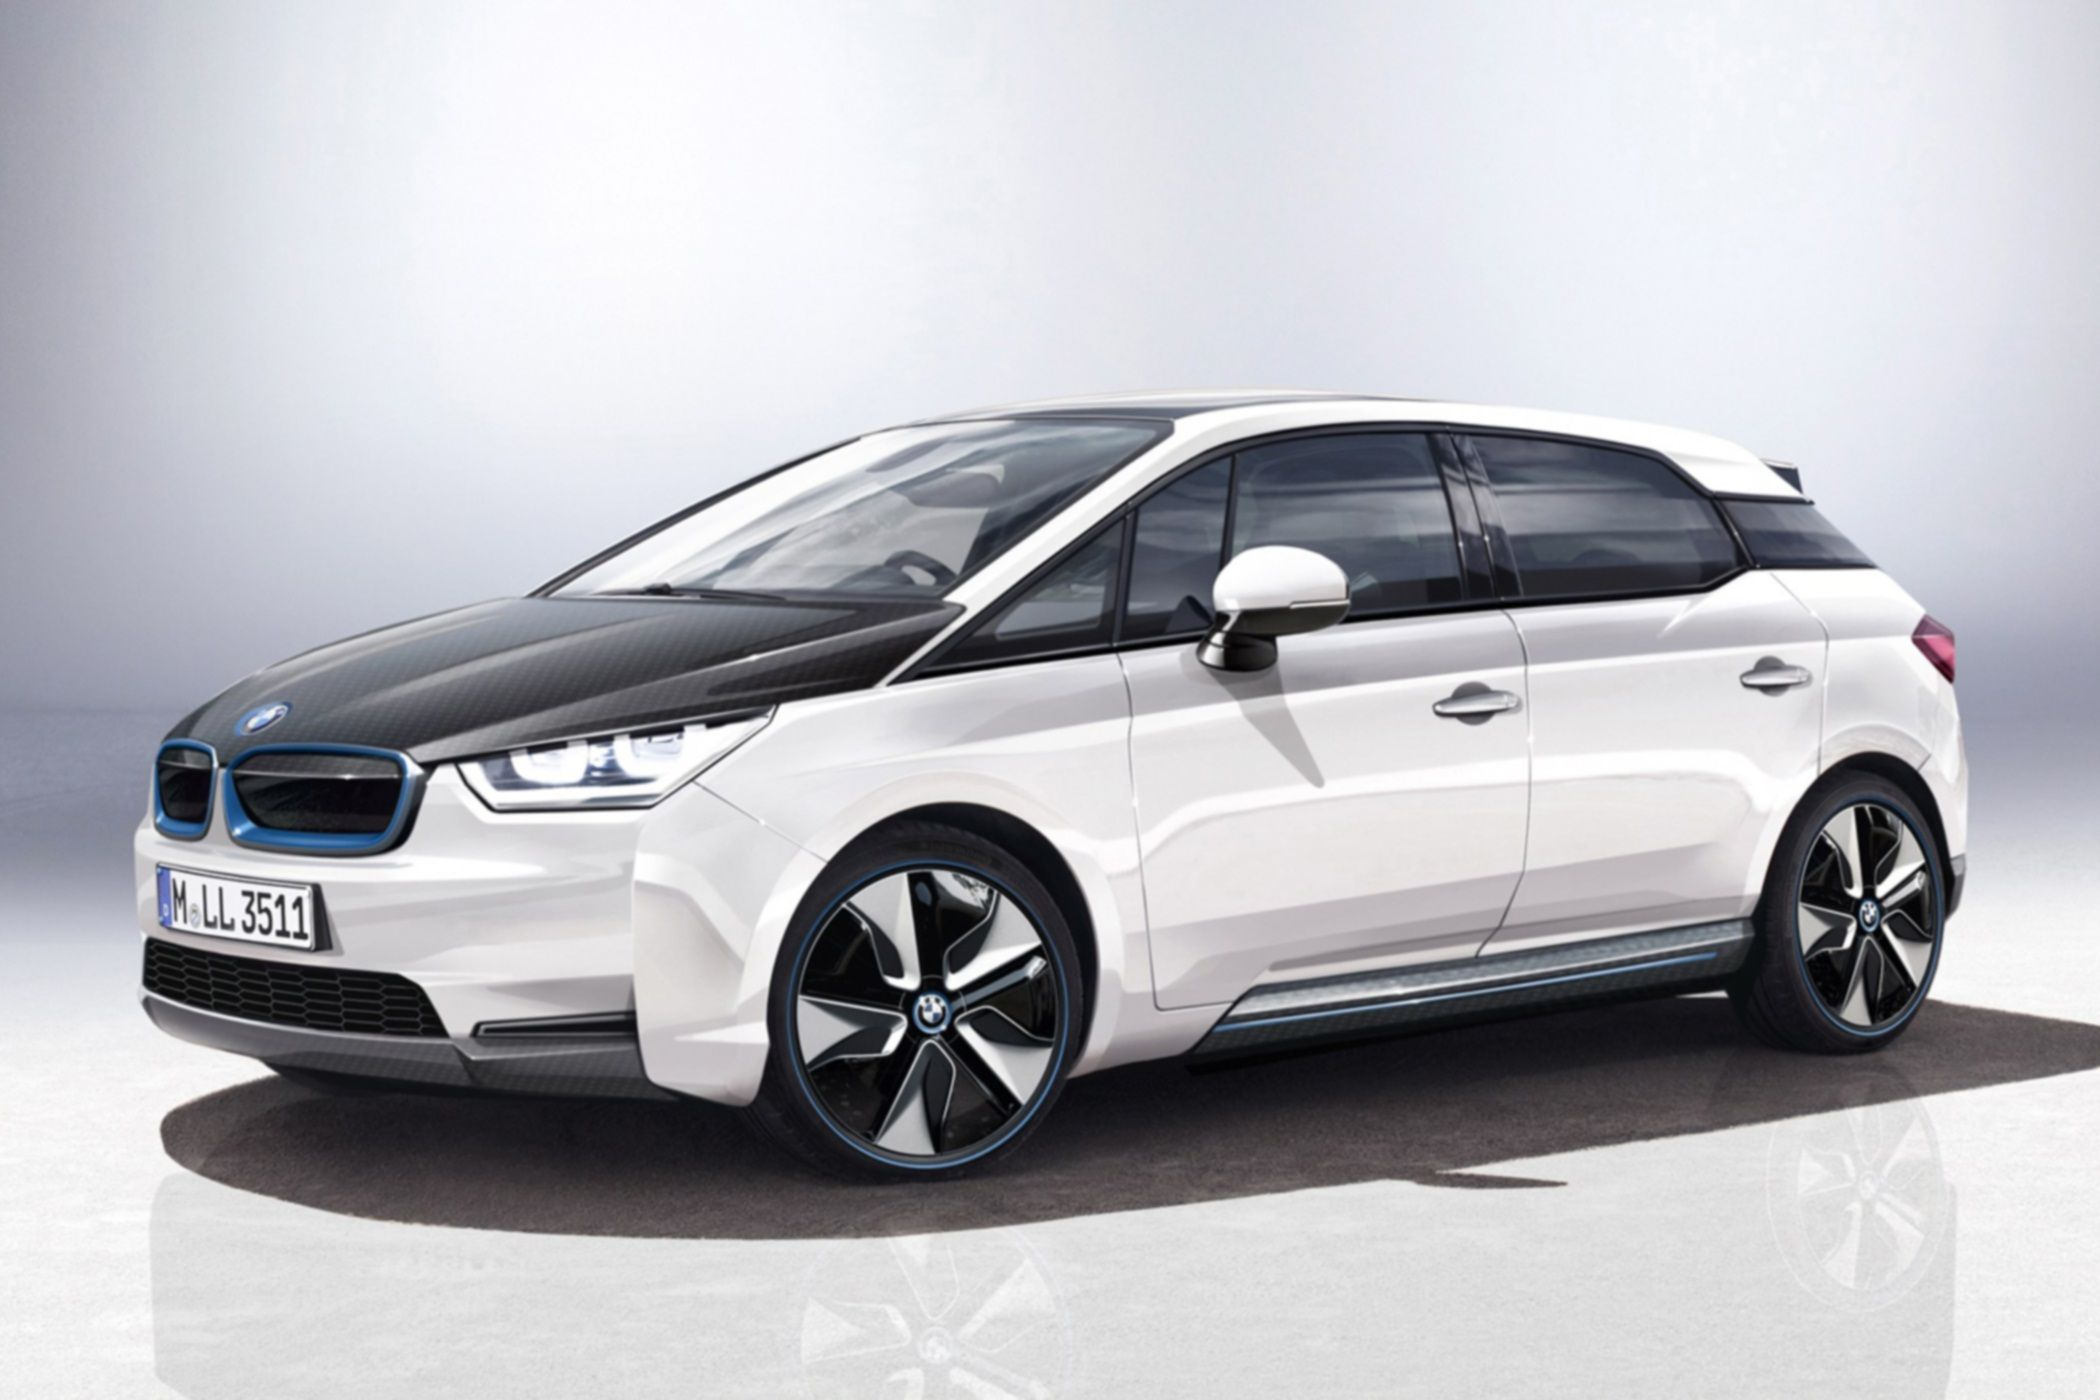 Bmw i5 prototype electric midsize car electric version of the bwm 5 series